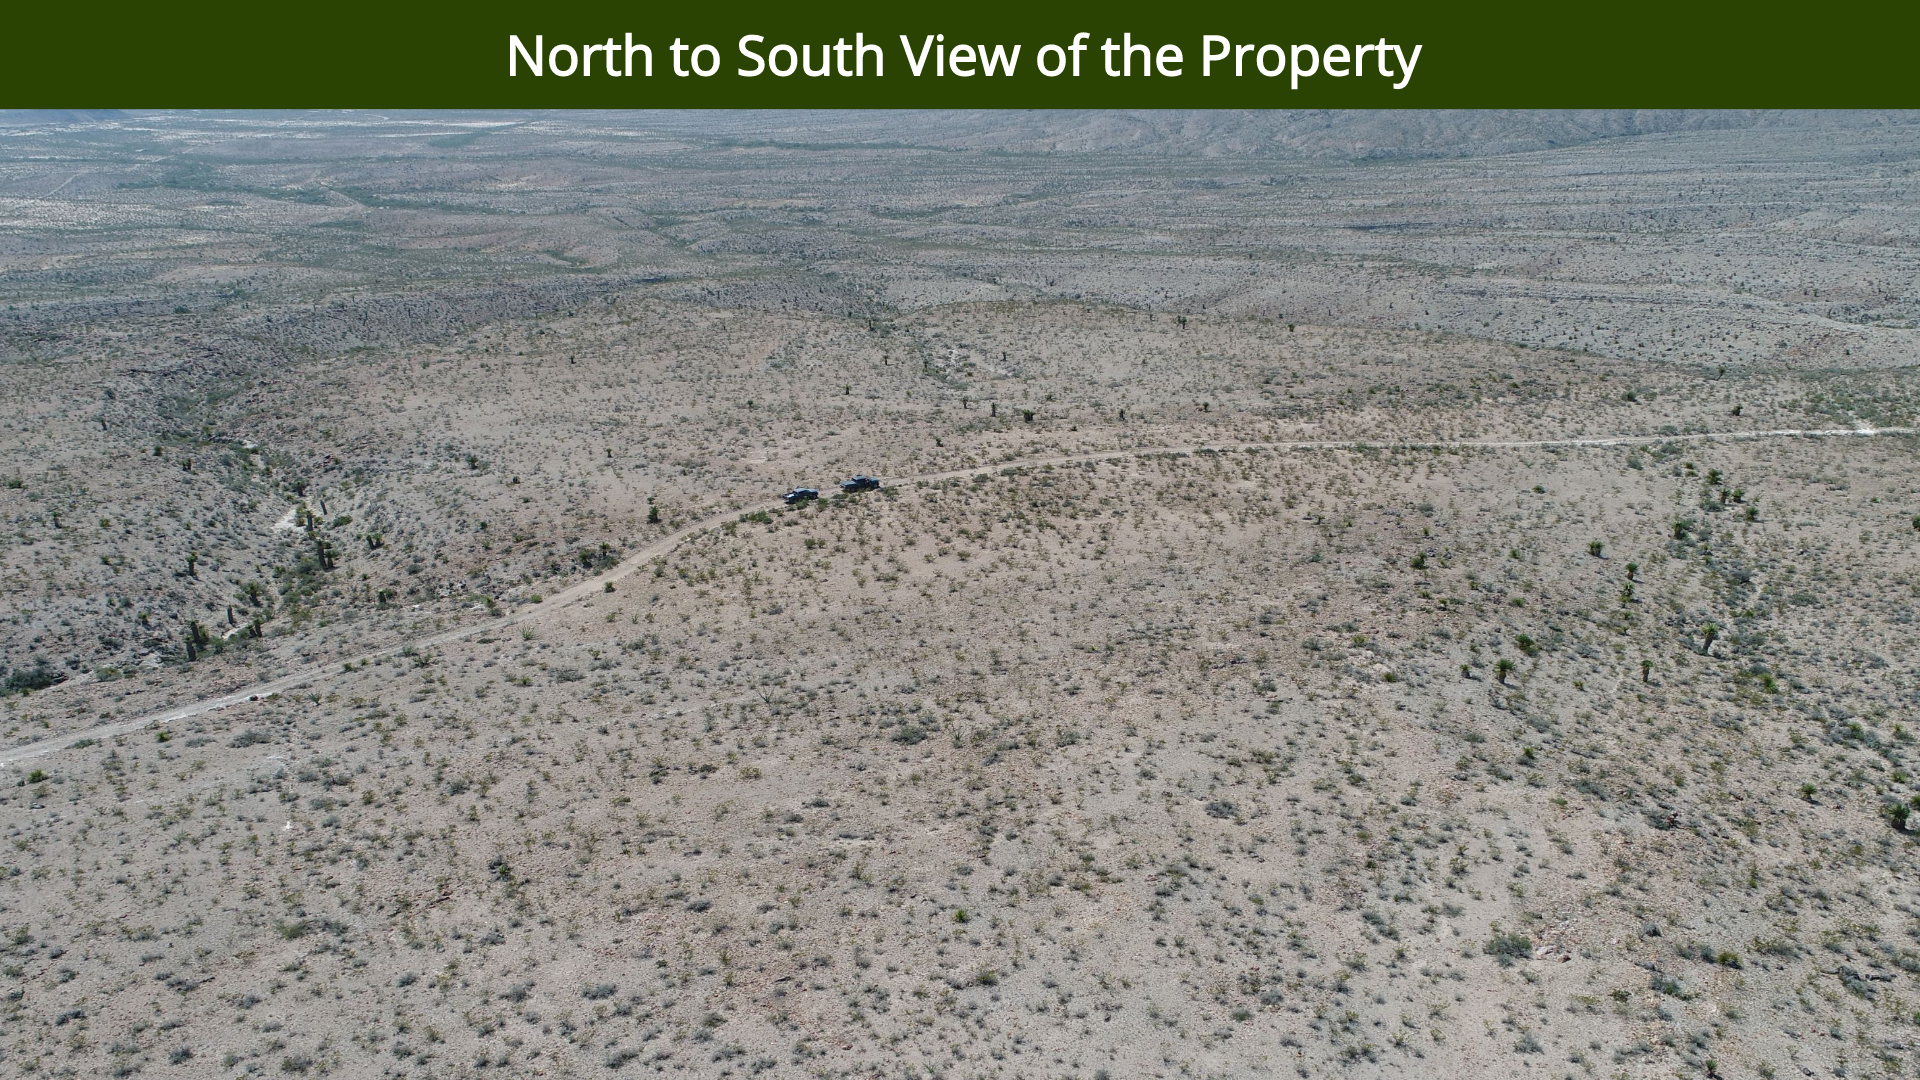 North to South View of the Property